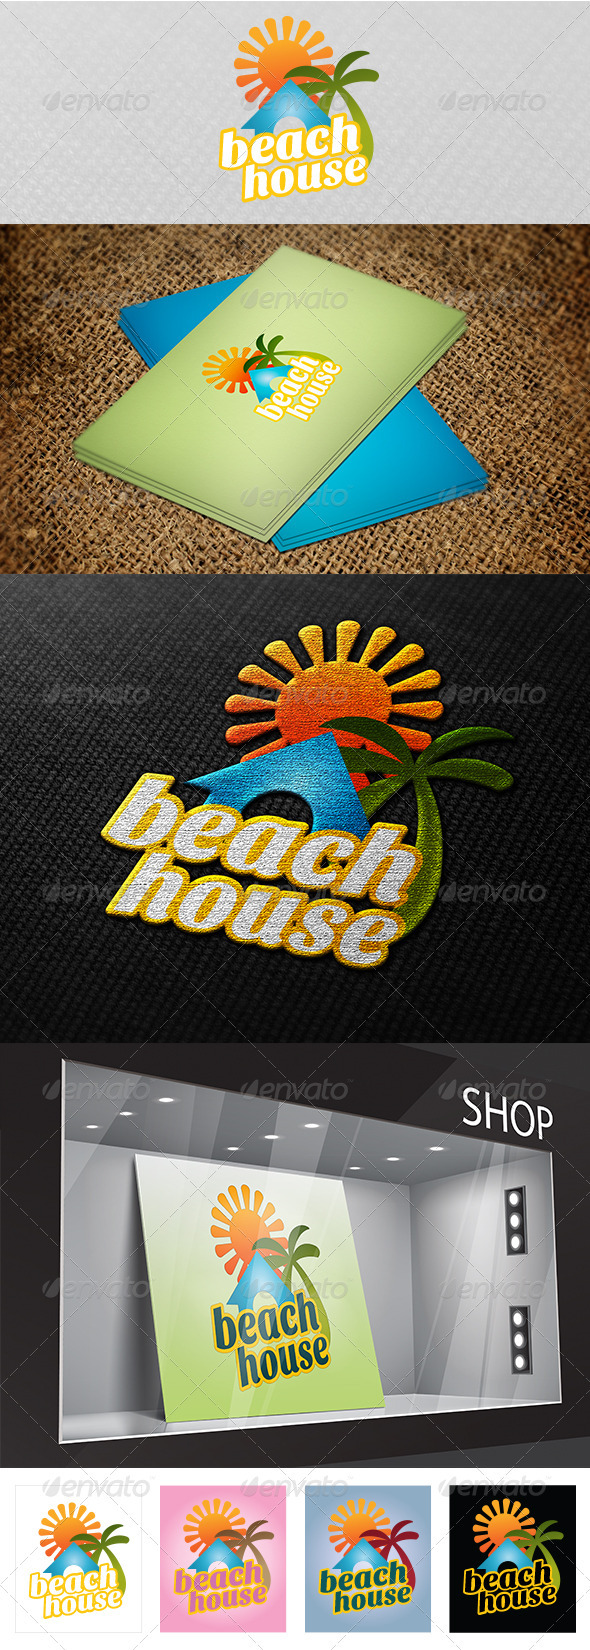 Beach House Logo  - Vector Abstract